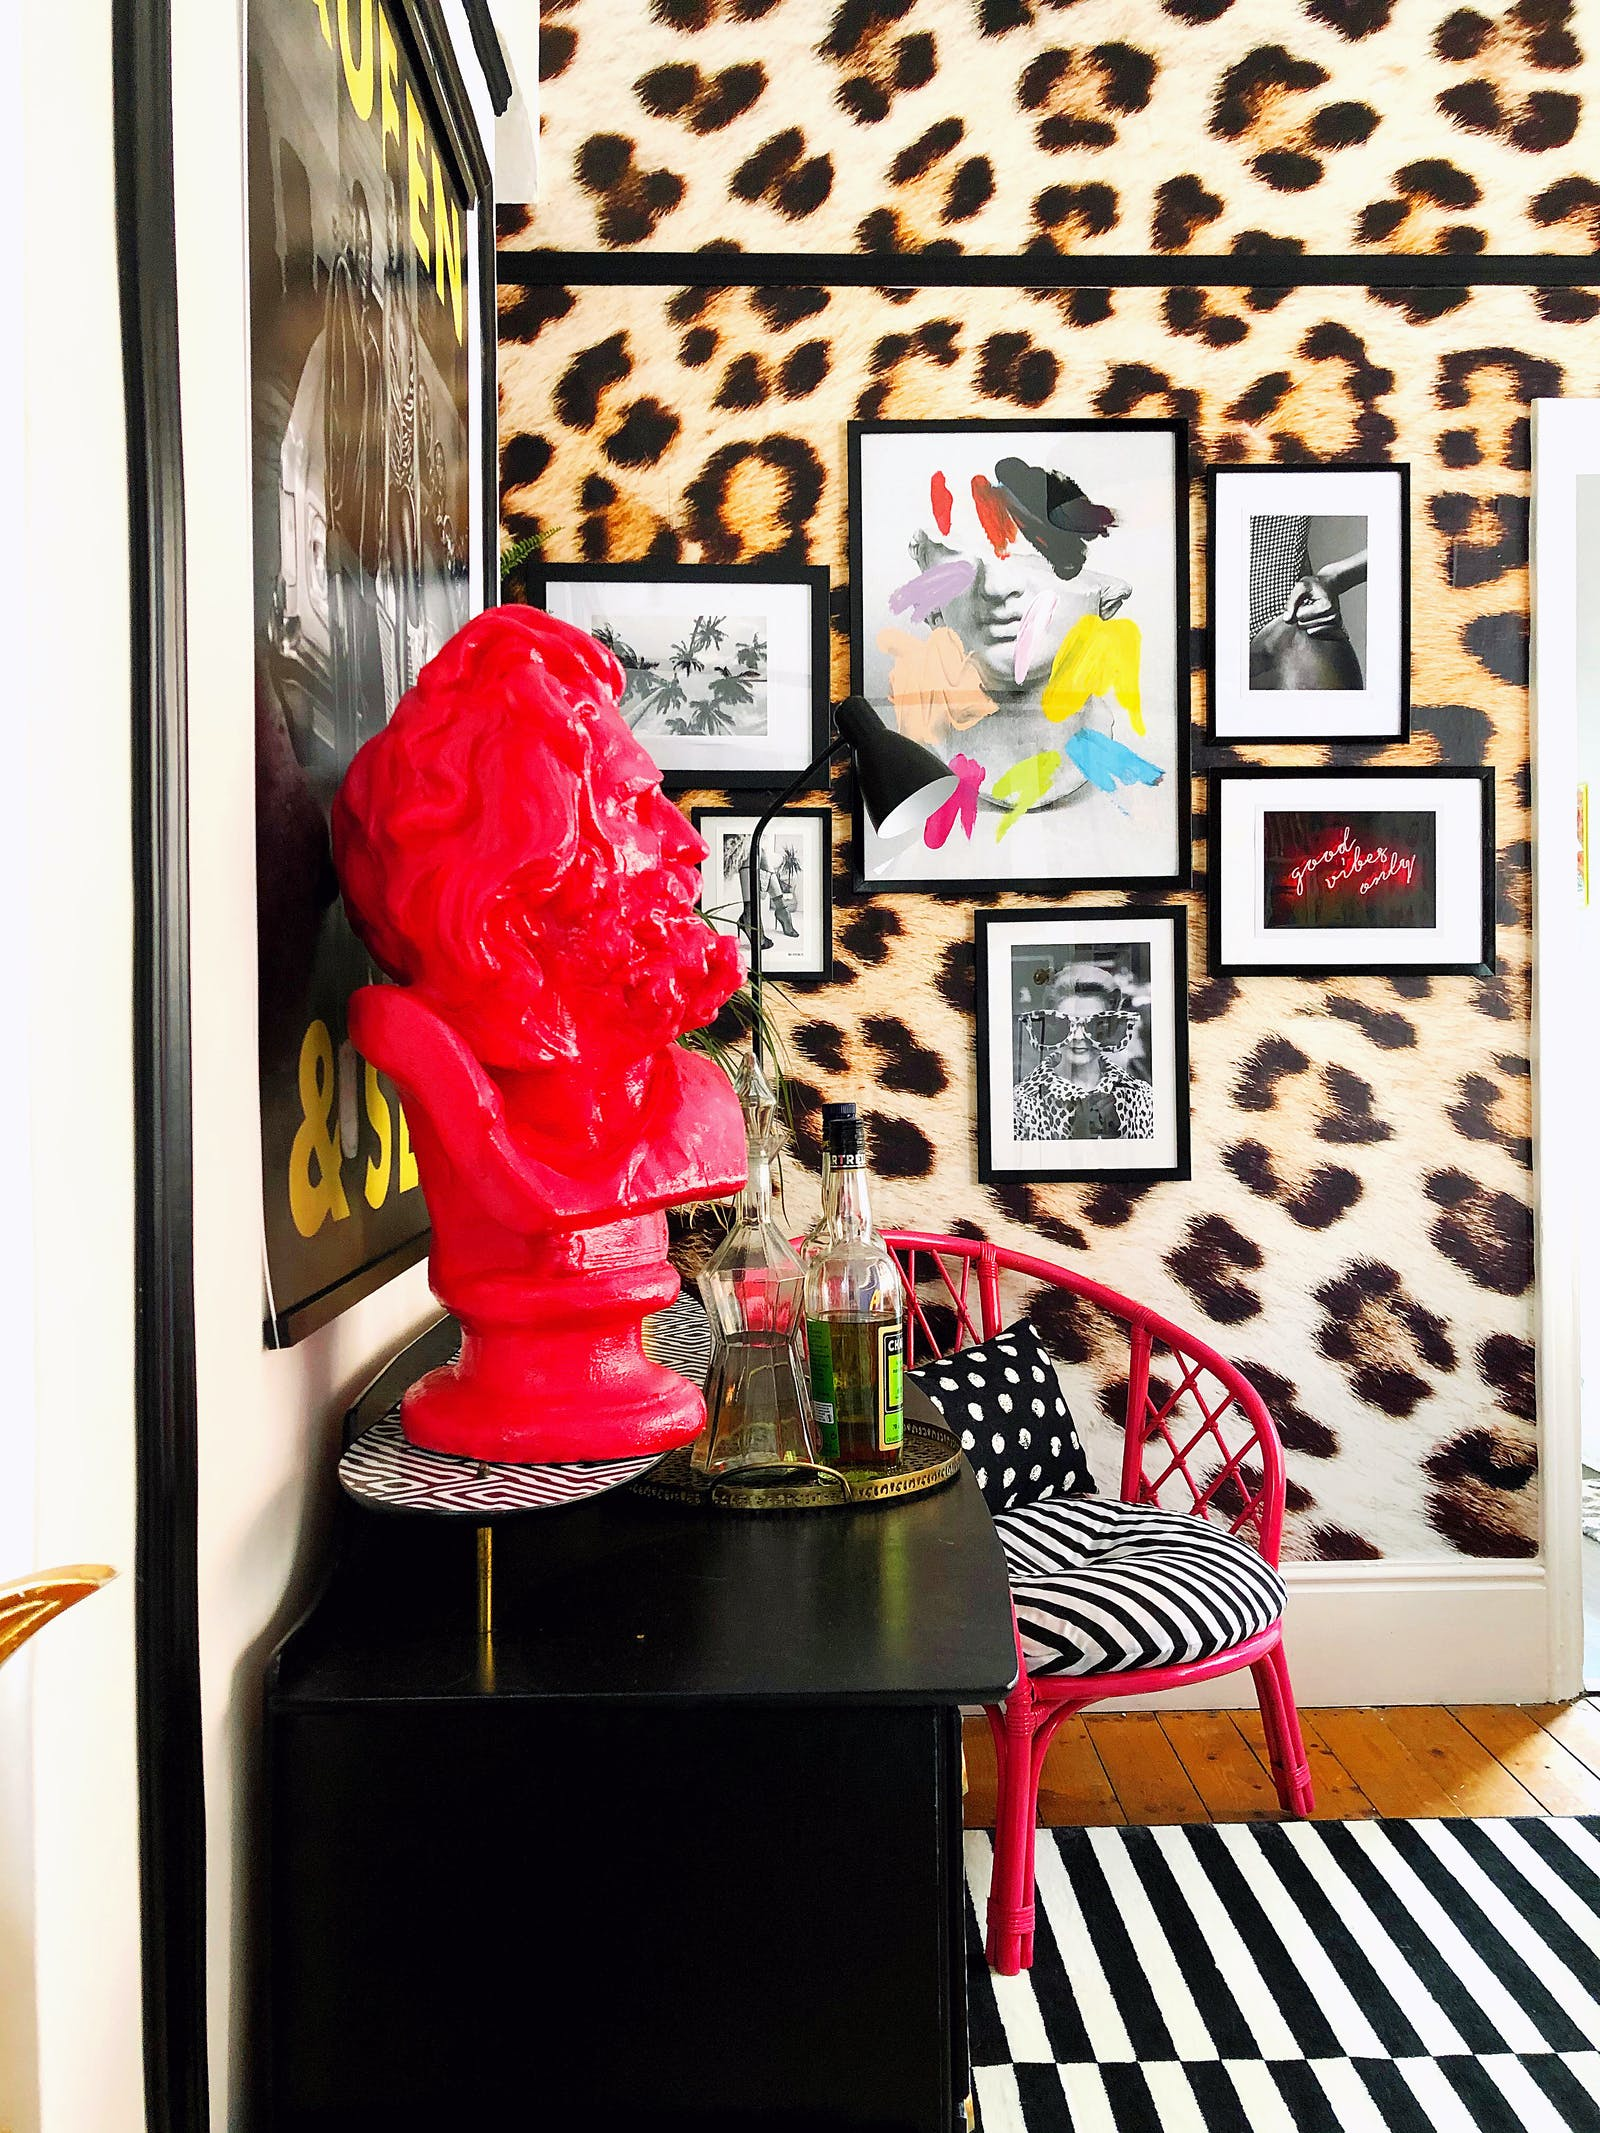 A pink head sculpture in a living room with cheetah wallpaper